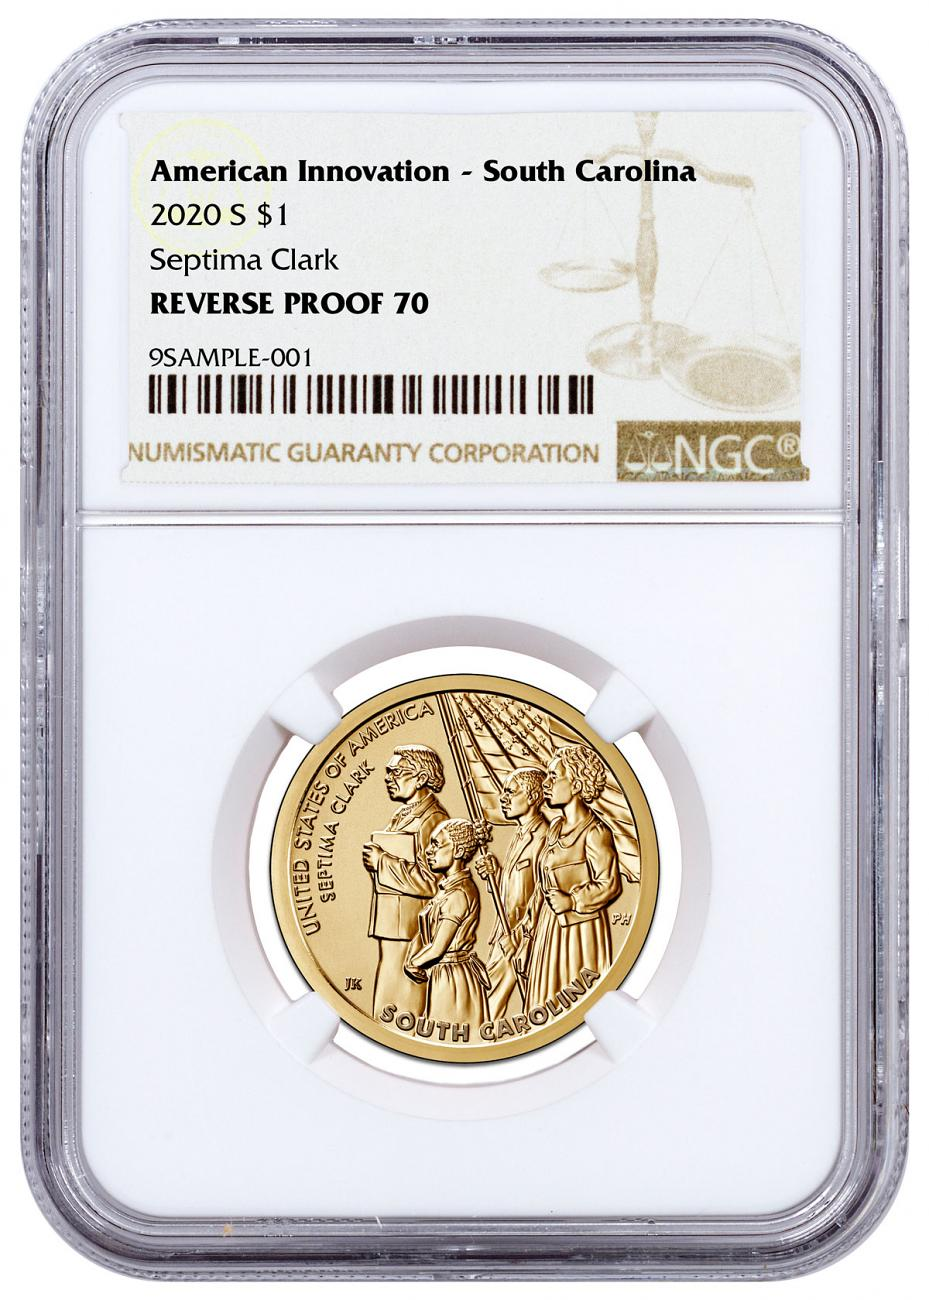 2020-S American Innovation South Carolina Dollar Reverse Proof Coin NGC Rev PF70 Brown Label